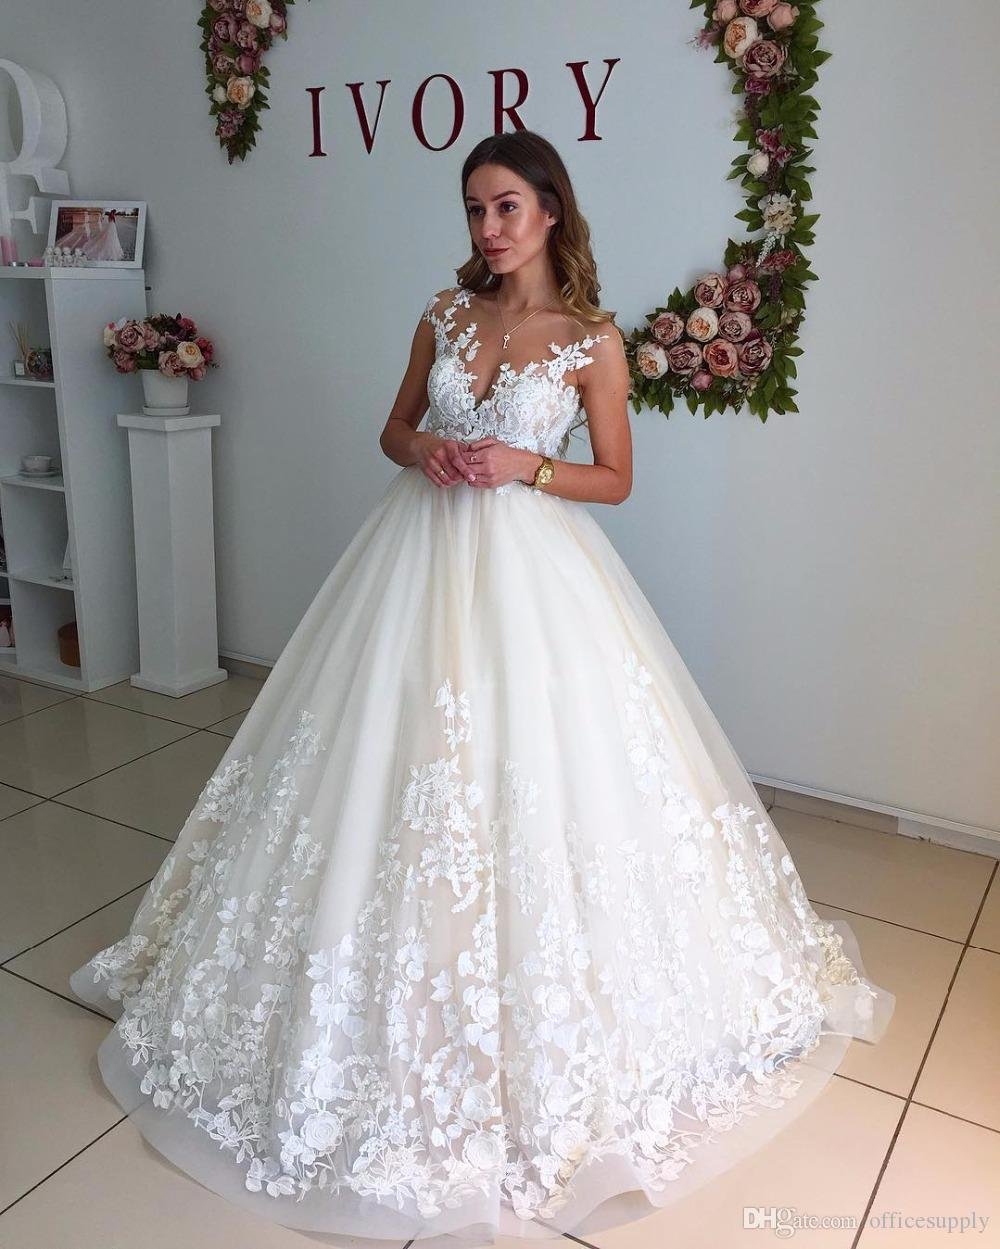 Ball Gown Wedding Dresses 2019 Chapel Train Sleeveless Tank Lace Appliques Deep V-Neck Zipper Bridal Gowns Vestidos De Noiva